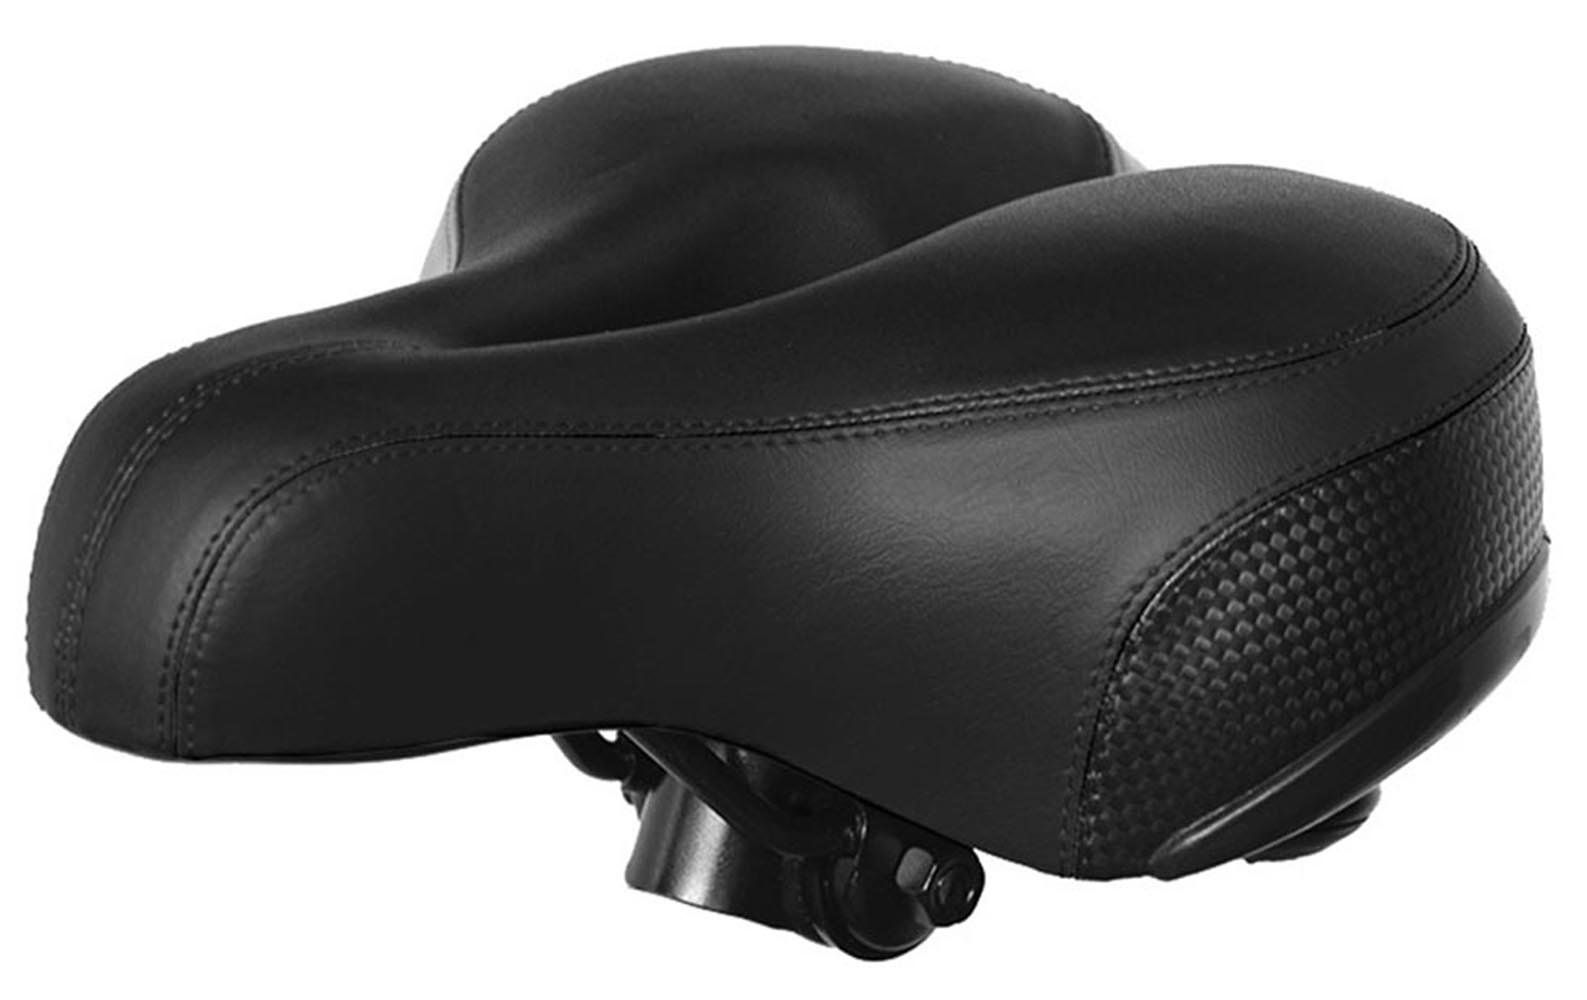 Bike Seat Padded Bicycle Saddle with good Cushion Comfortable Shock-Absorption